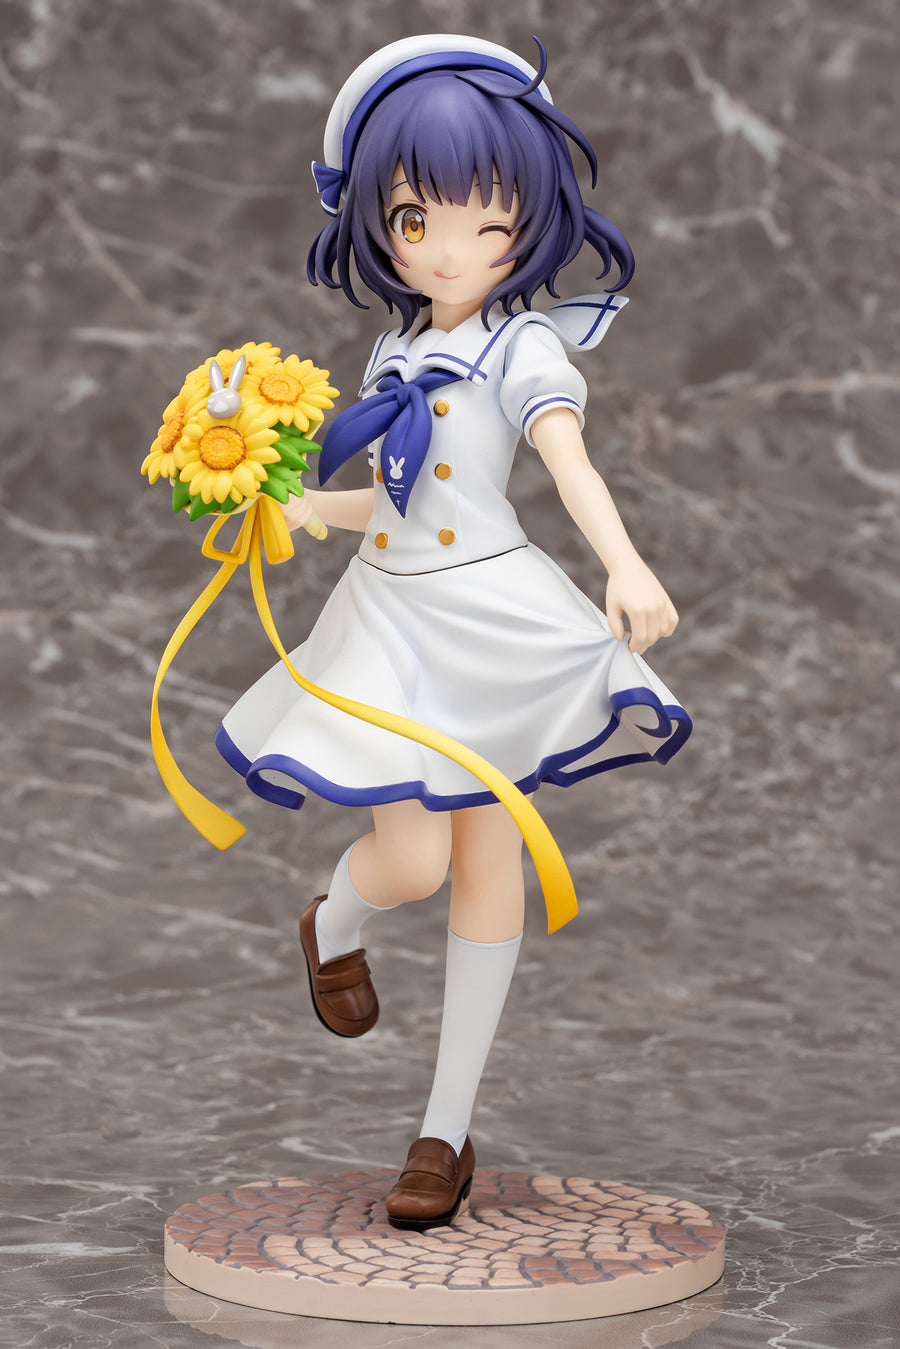 Is the order a rabbit?? - Maya (Summer Uniform) - 1/7th Scale Figure